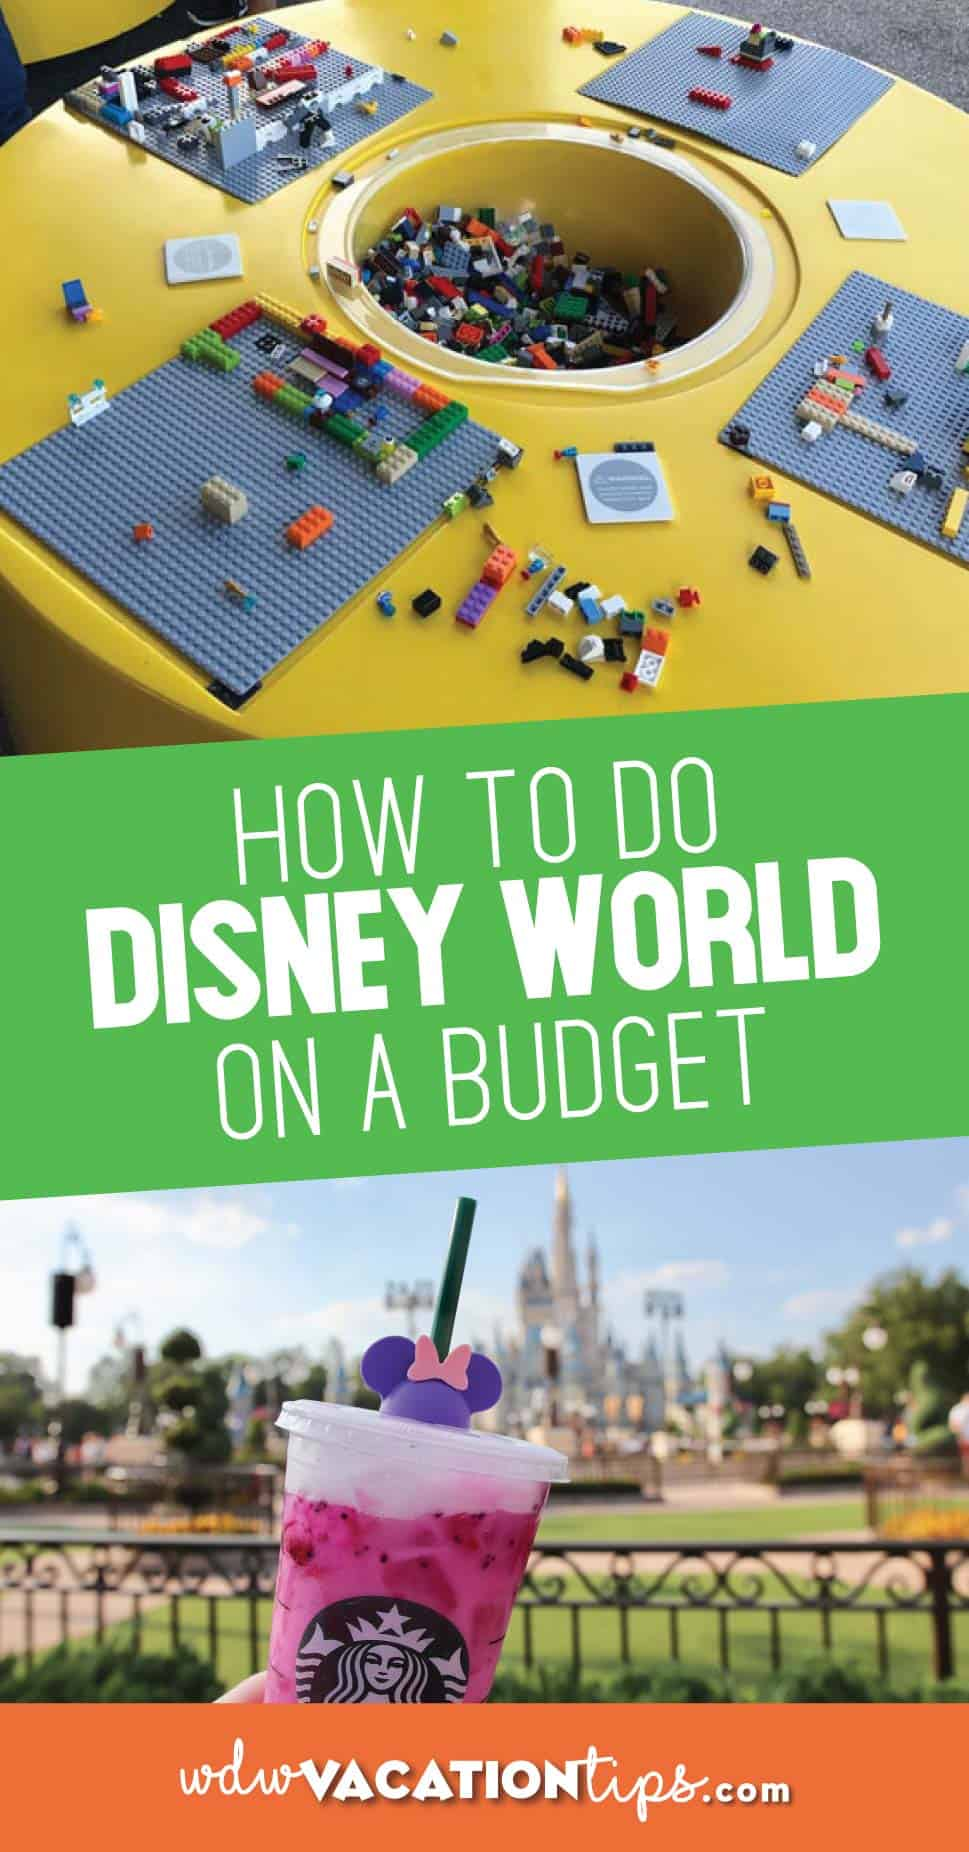 How to do Disney World on a Budget 1